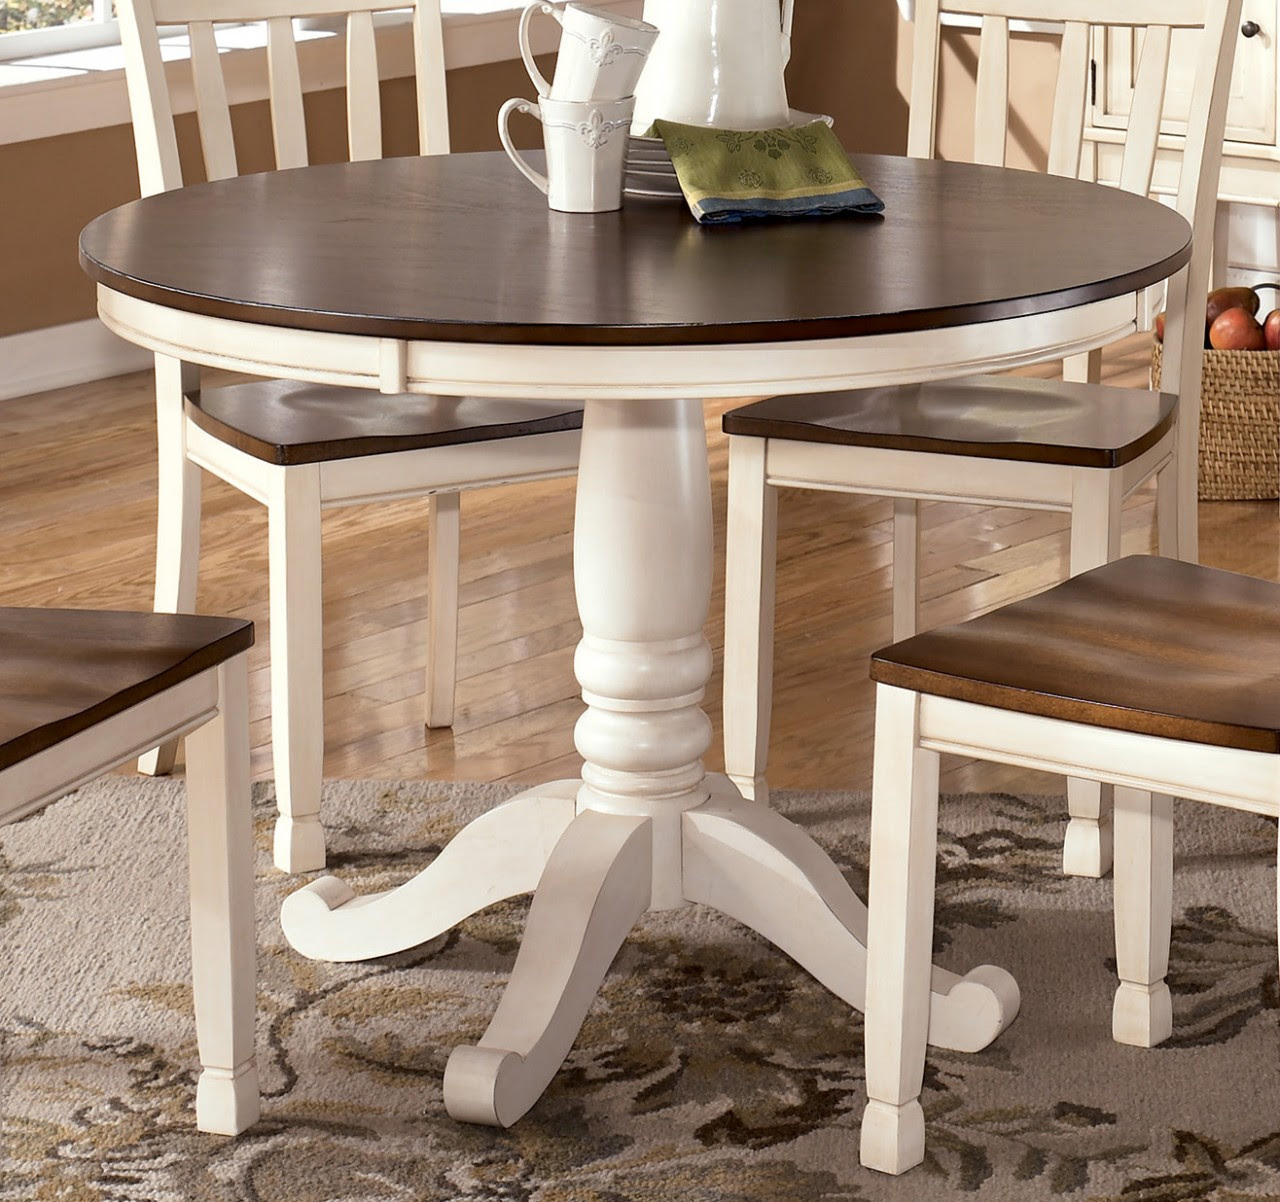 Whitesburg Round Dining Table in Brown - White by Dining Rooms Outlet